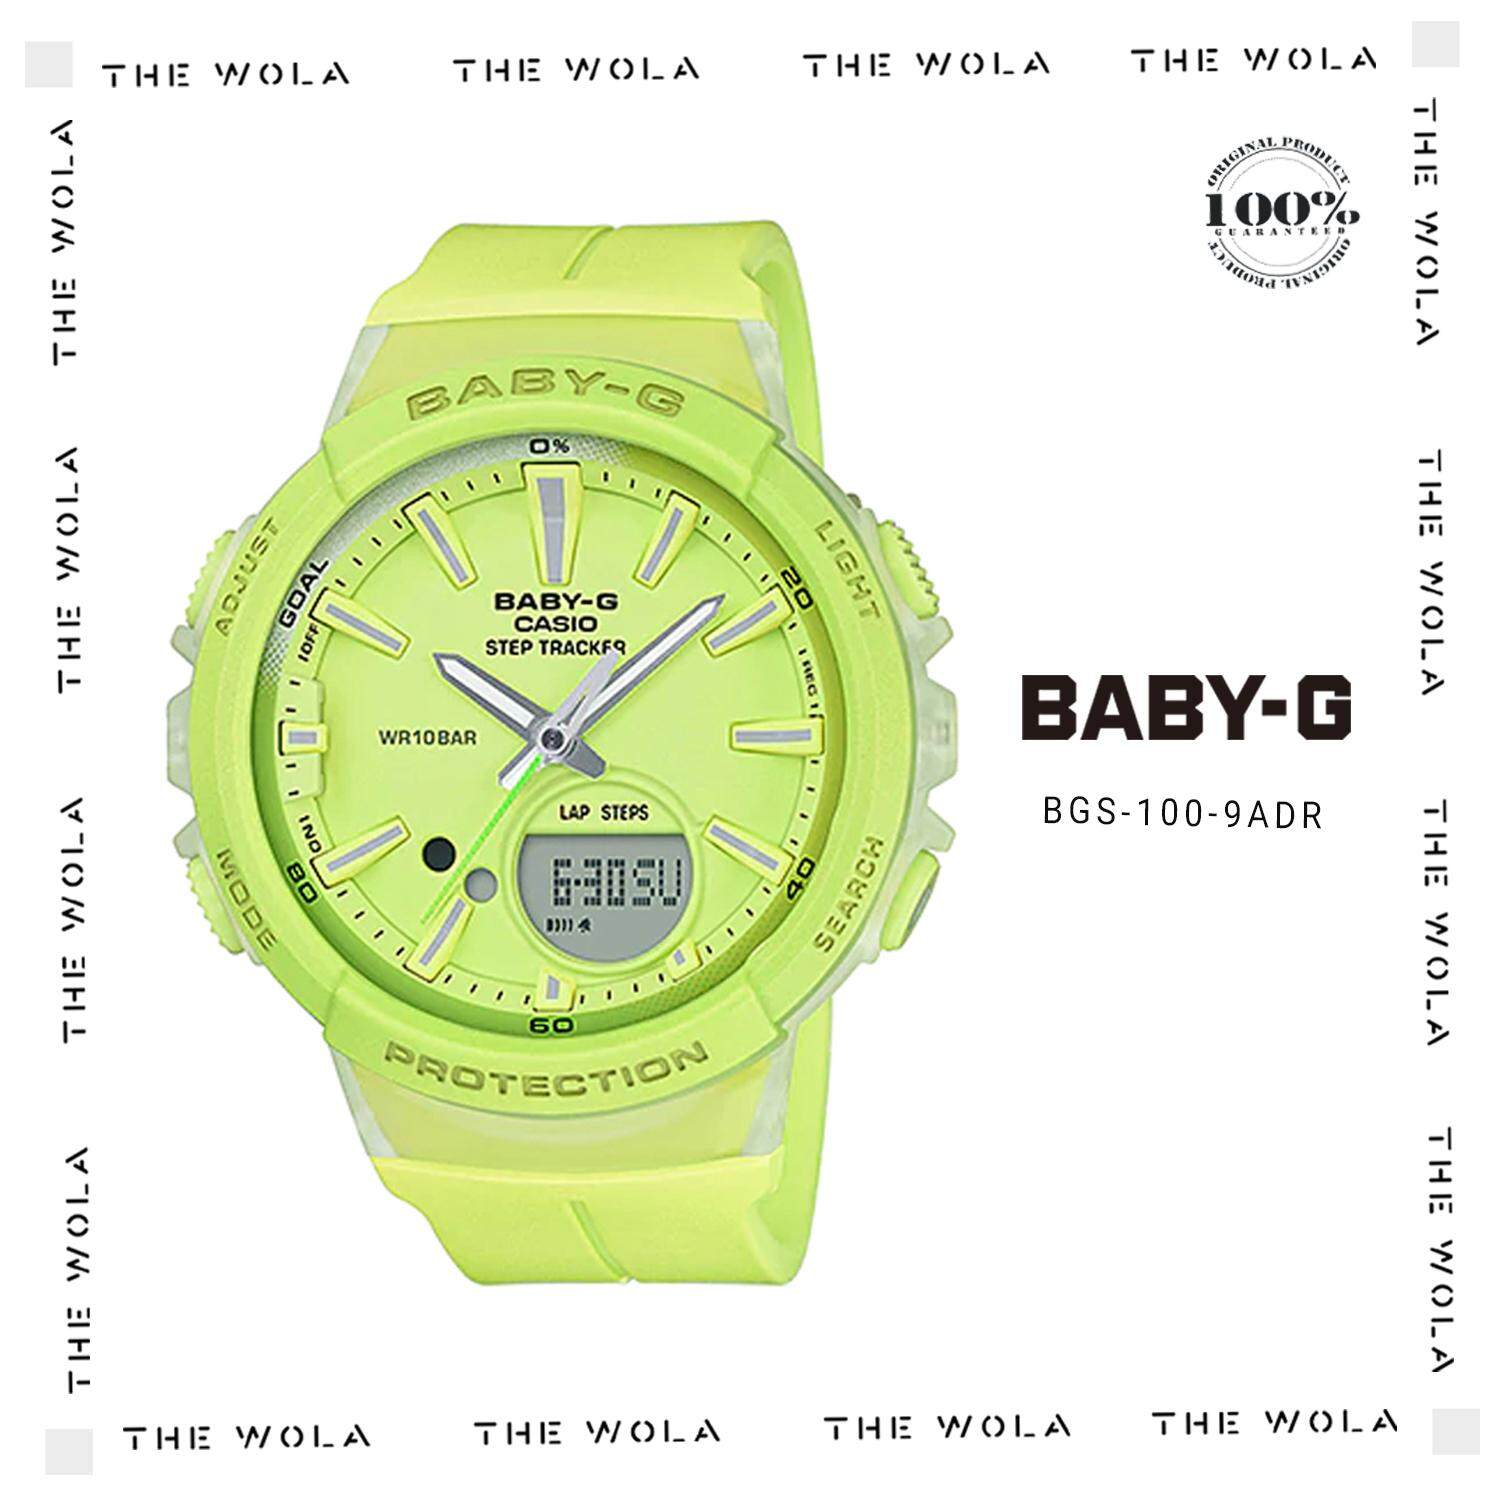 Casio Baby G Products For The Best Price In Malaysia Ba 110sn 3a Watch Bgs 100 9adr